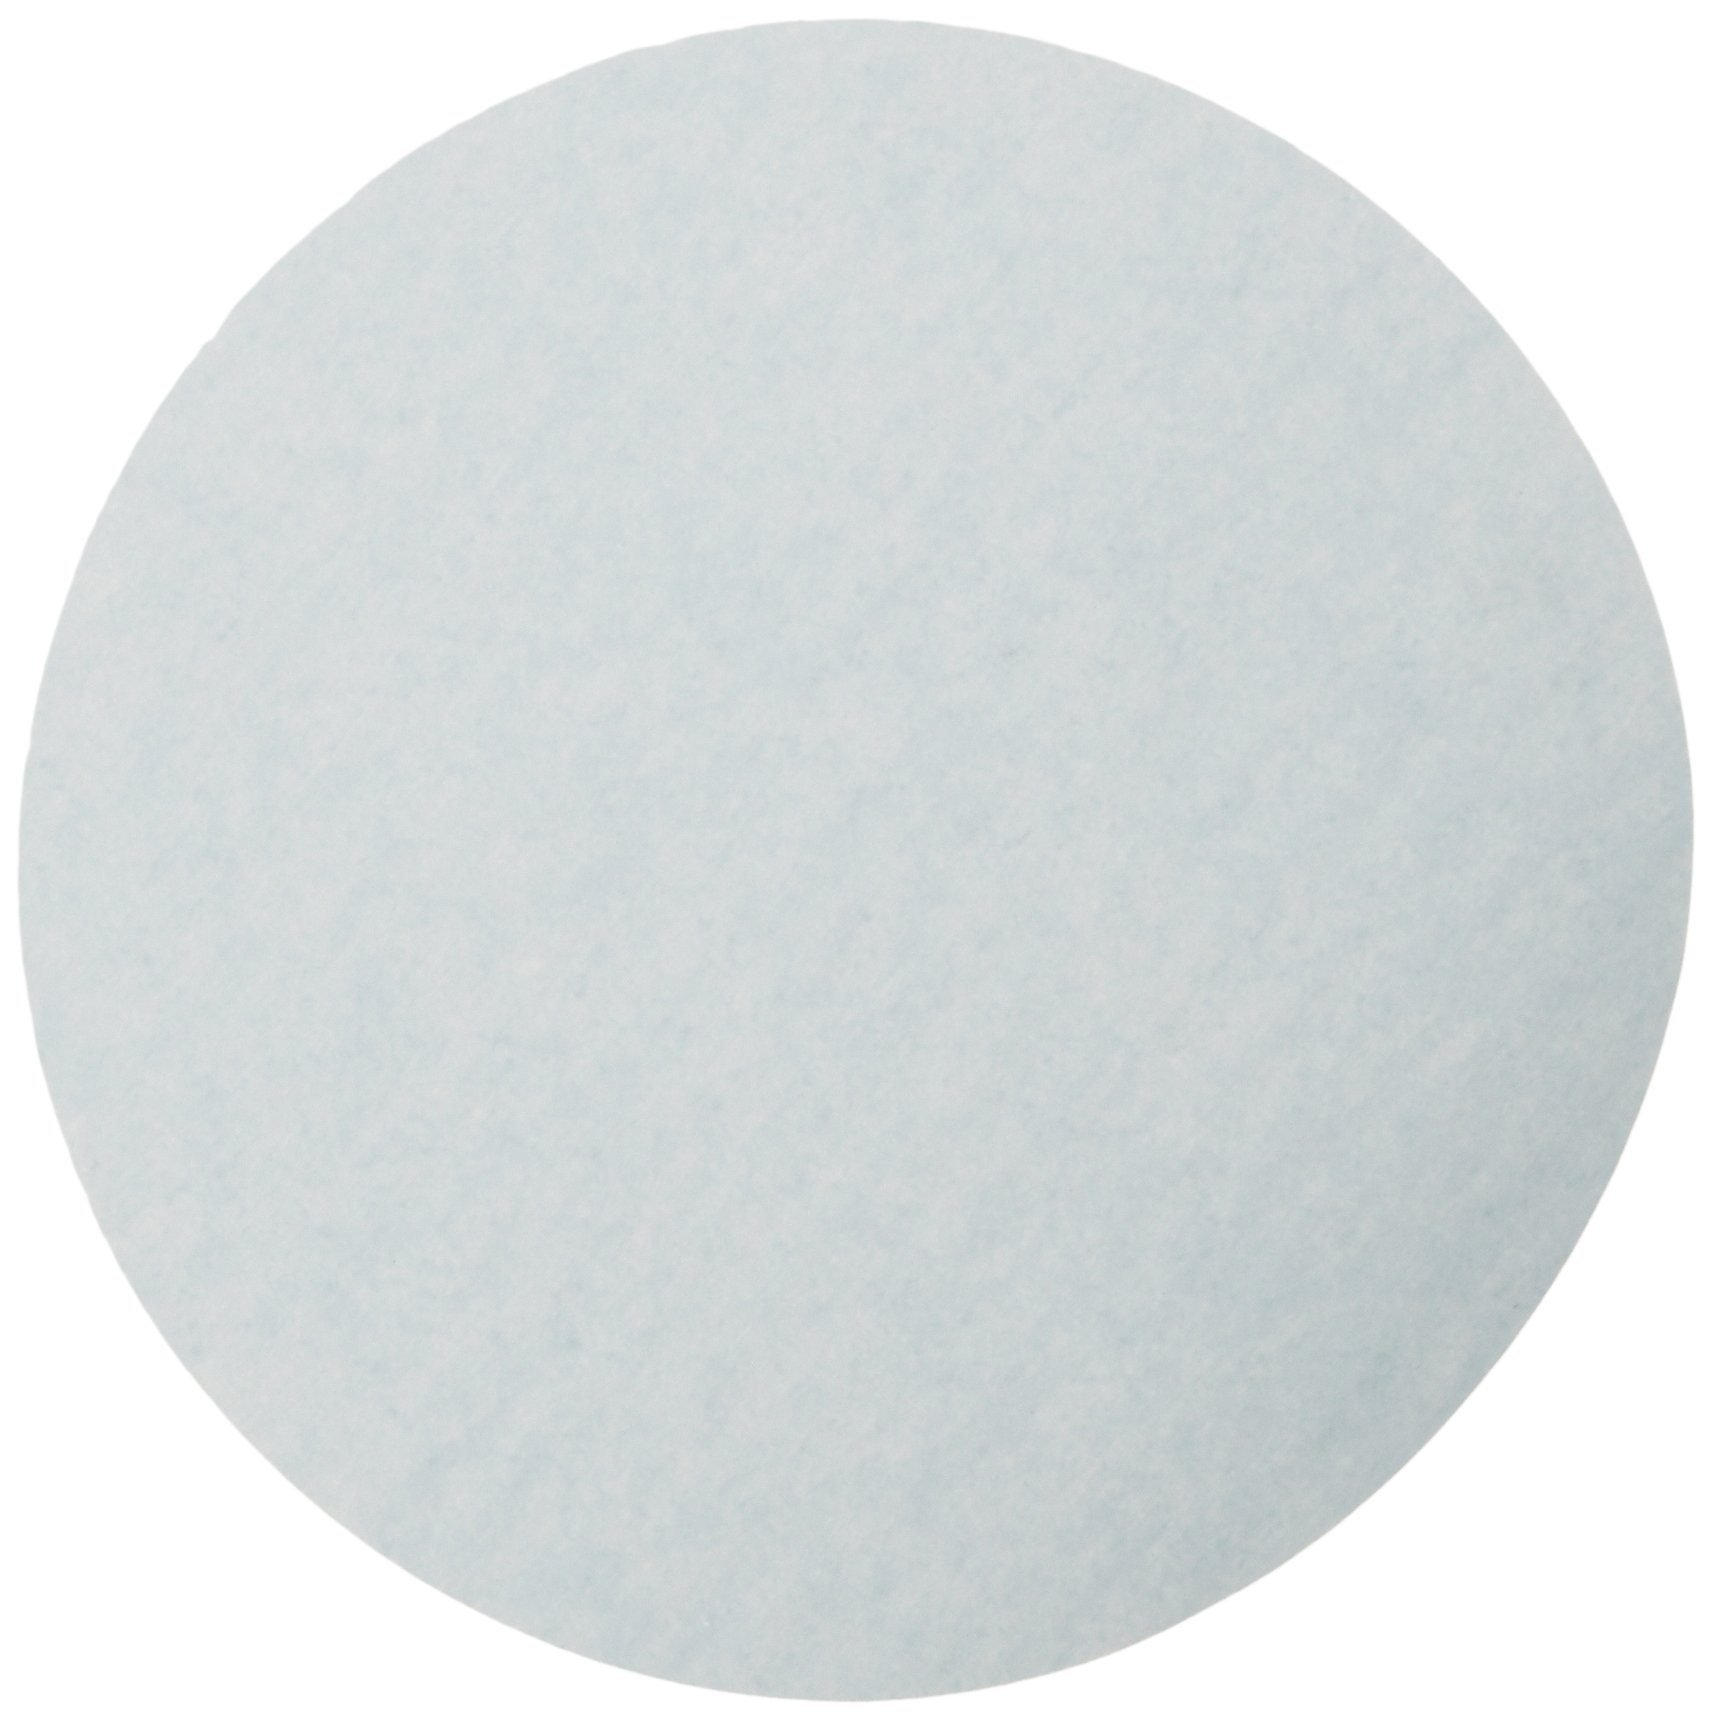 White EMD Millipore S-Pak GSWG047S6 Mixed Cellulose Ester Sterile Filter Membrane 47mm Filter Diameter 0.22/µm Pore Size Pack of 600 Gridded Surface